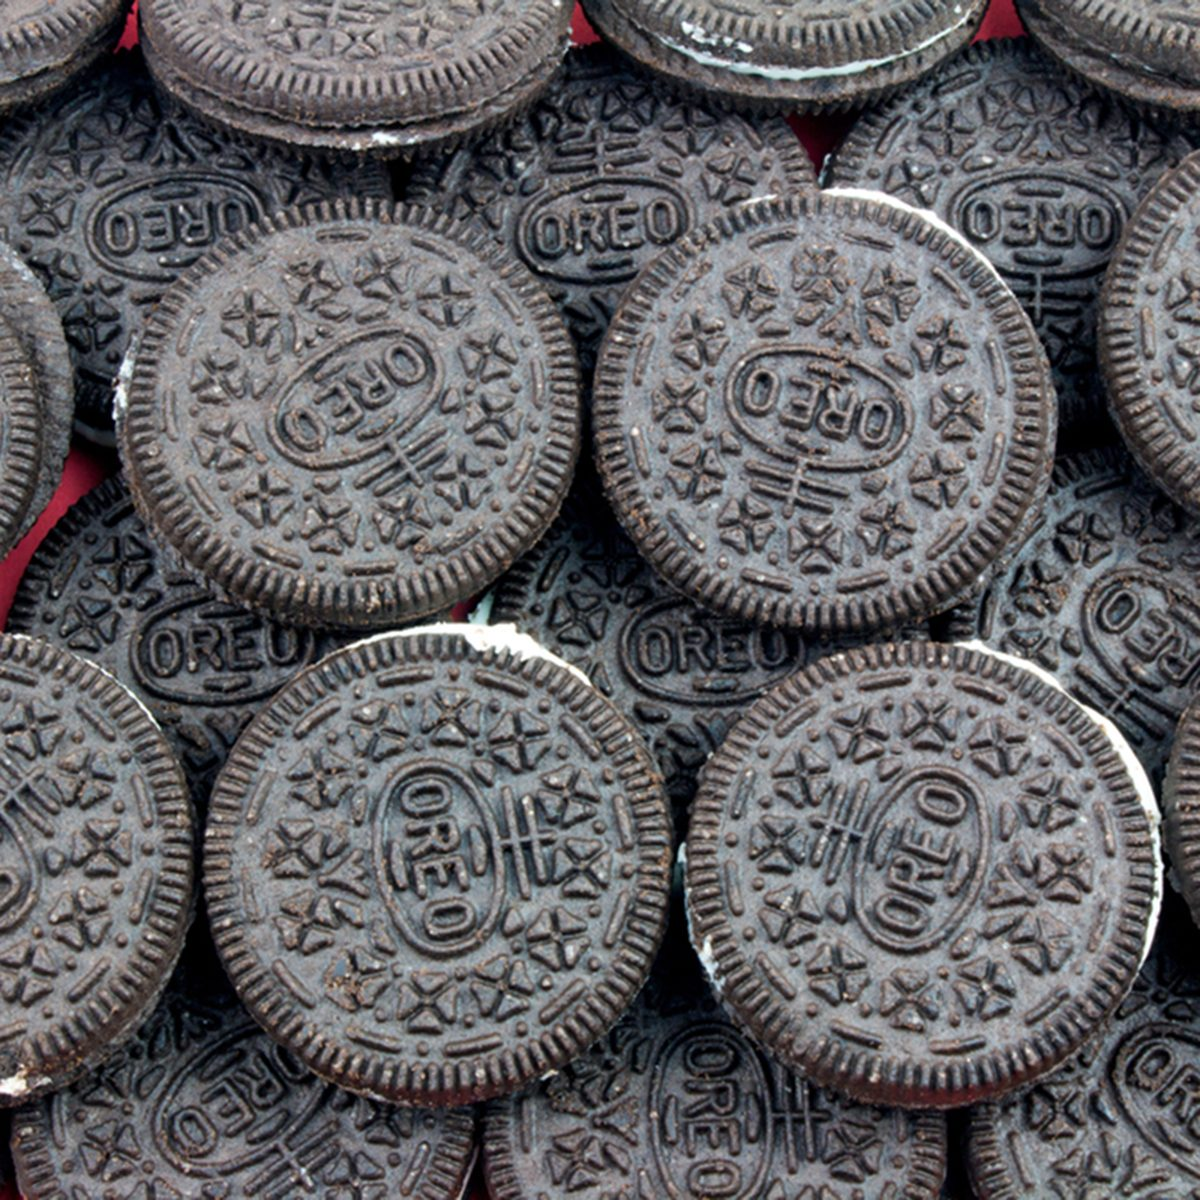 Oreo Just Launched a NEW Limited Edition Creme, and We Couldn't Be More Proud